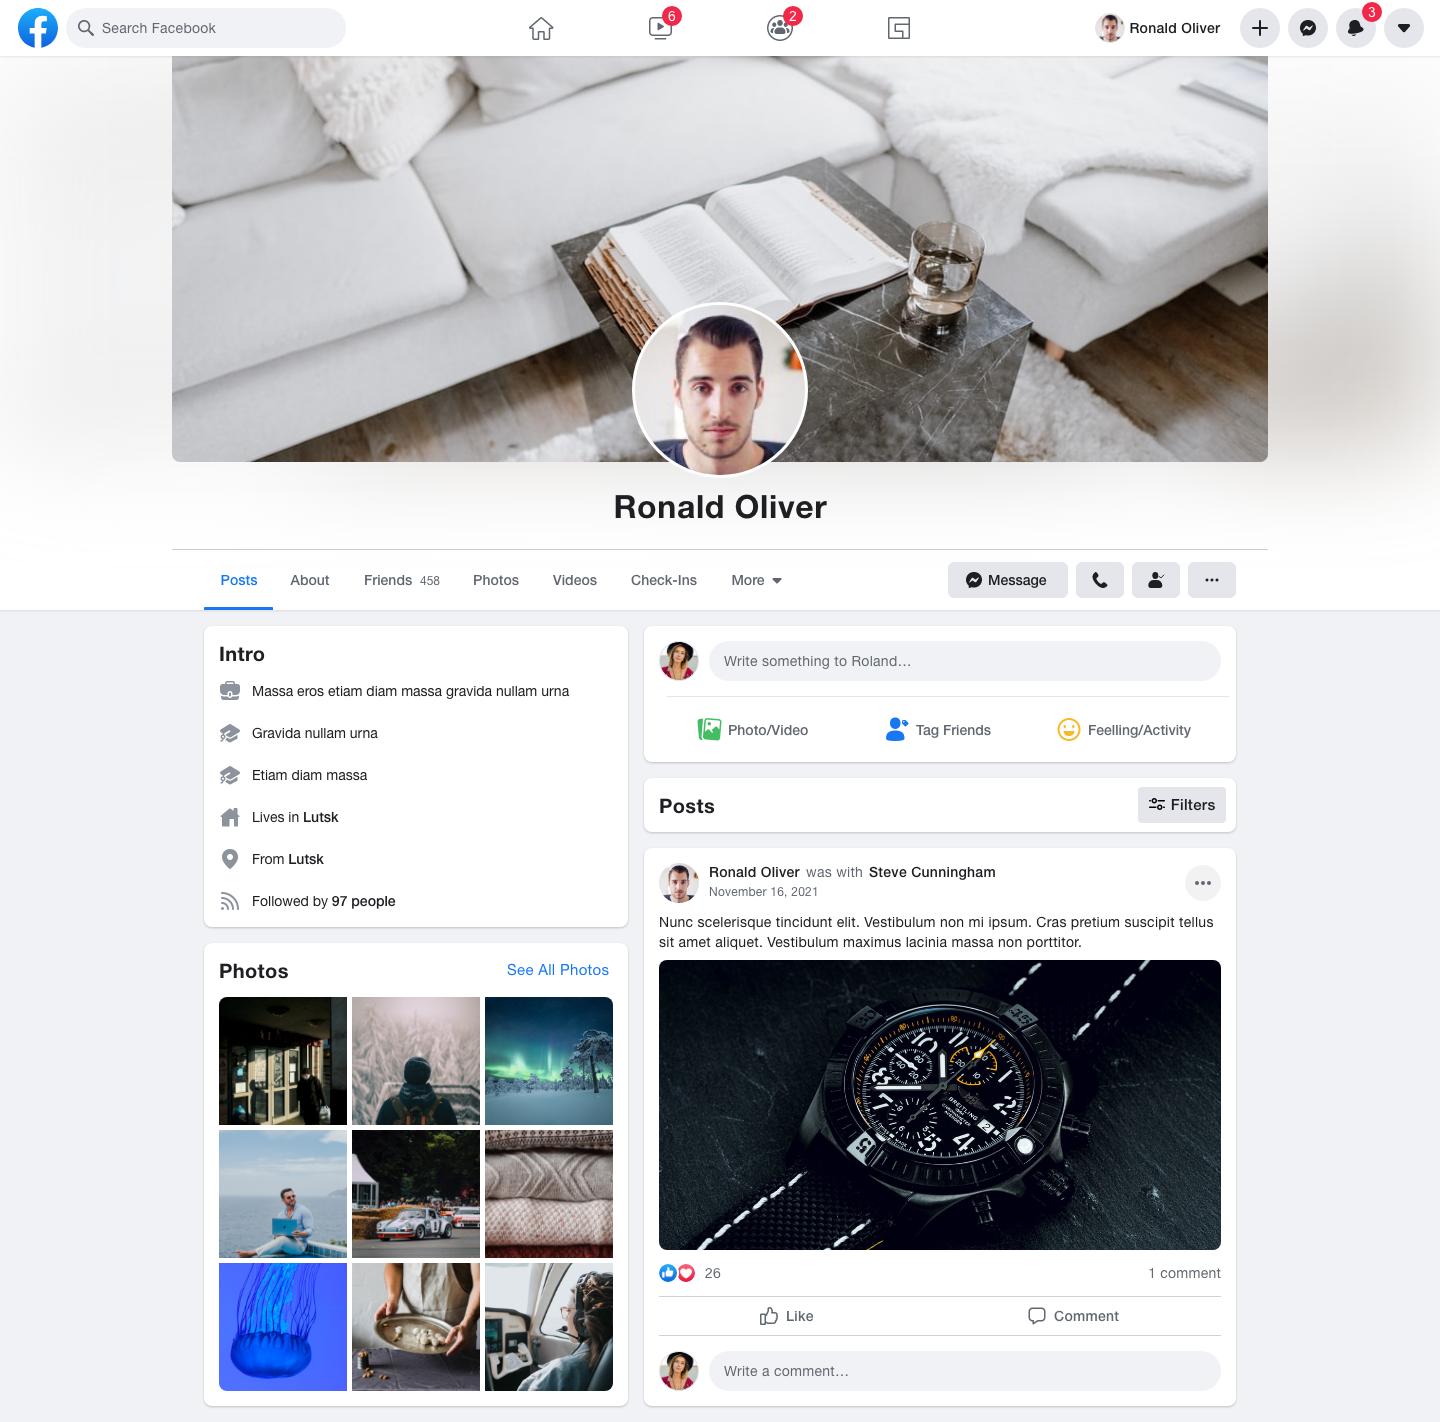 Facebook Page Mockup Light.png (1.21 MB)